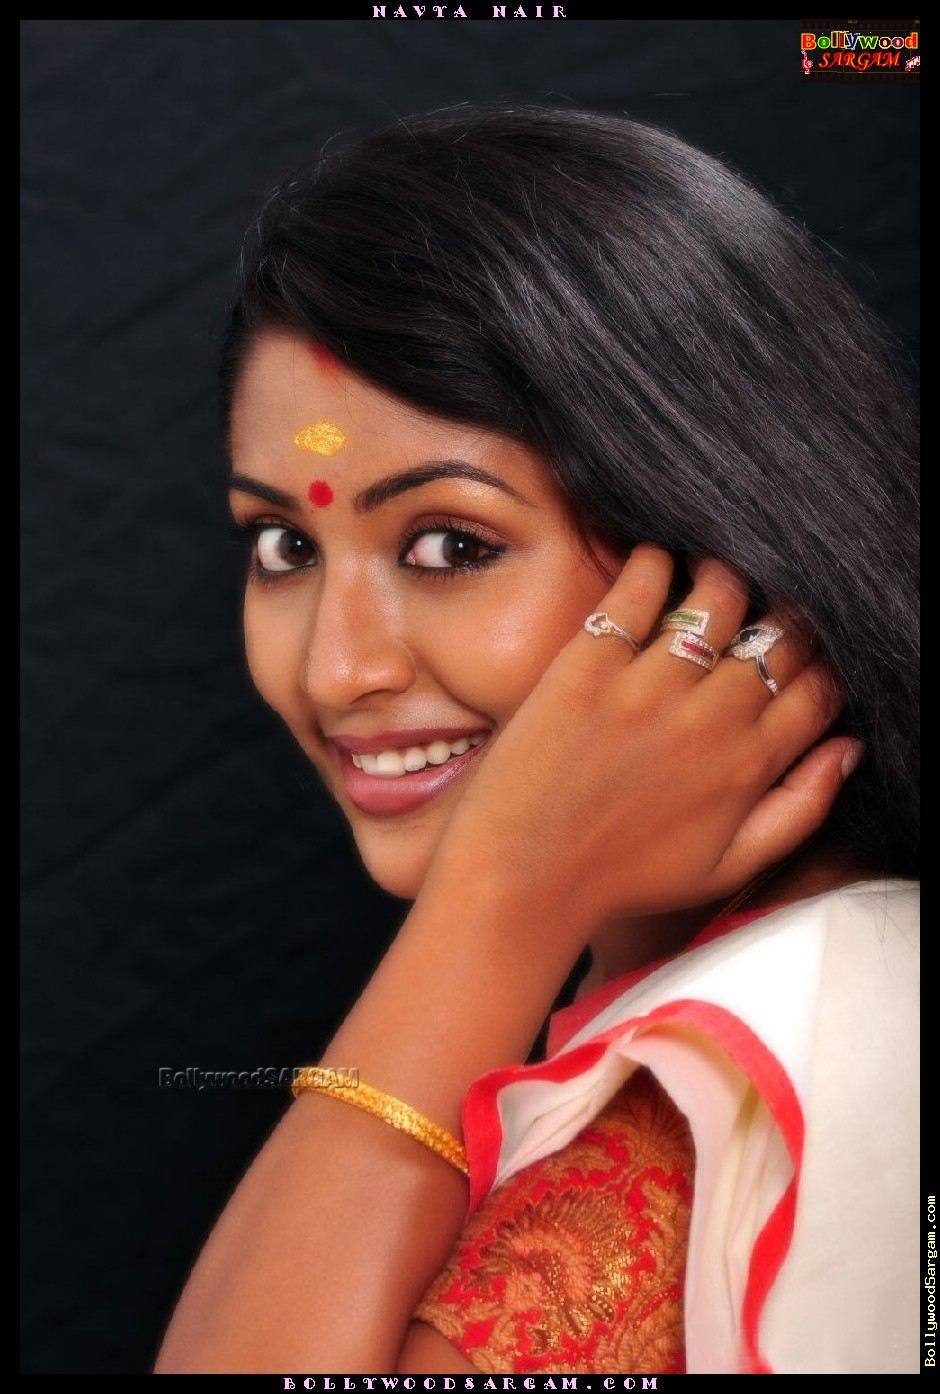 navya nair hot song